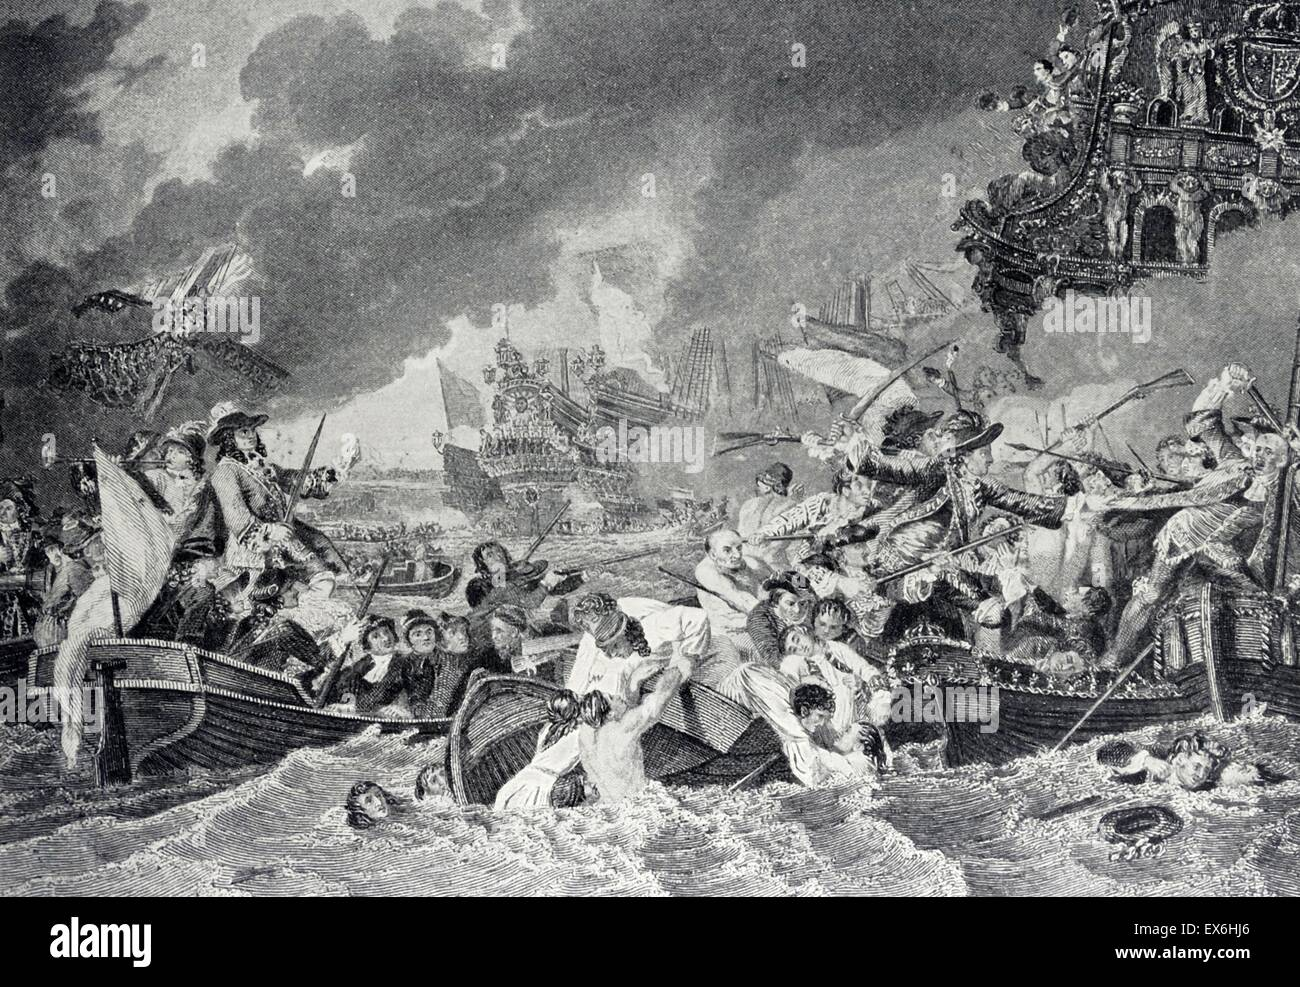 Line engraving of the Battle of La Hogue. The Soleil Royal and other French ships burned in Cherbourg Bay. Engraved - Stock Image